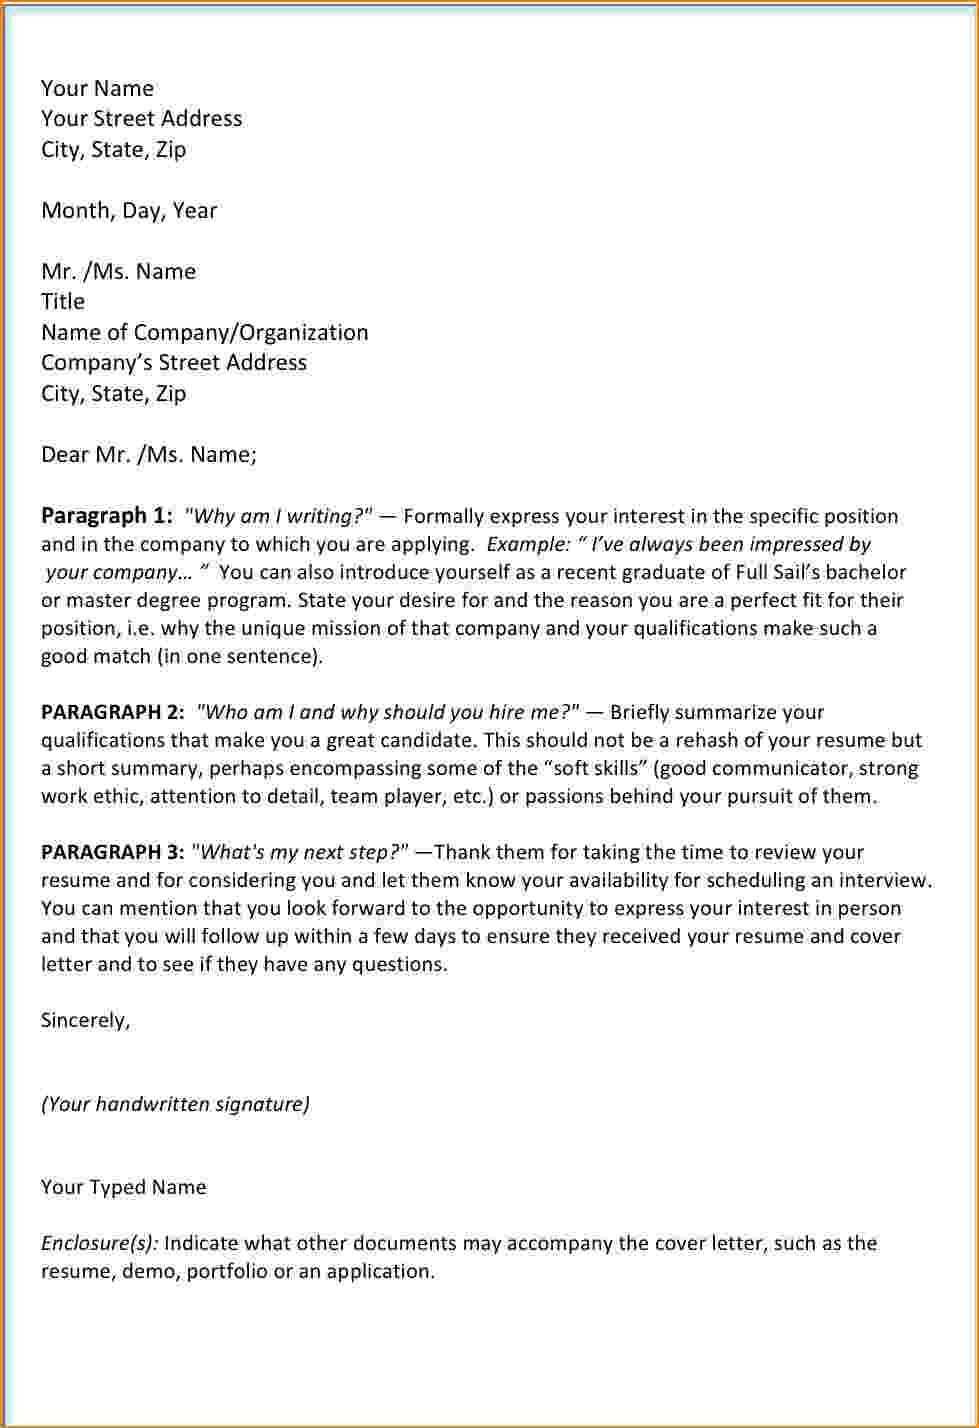 25+ How To Address Cover Letter Cover letter for resume